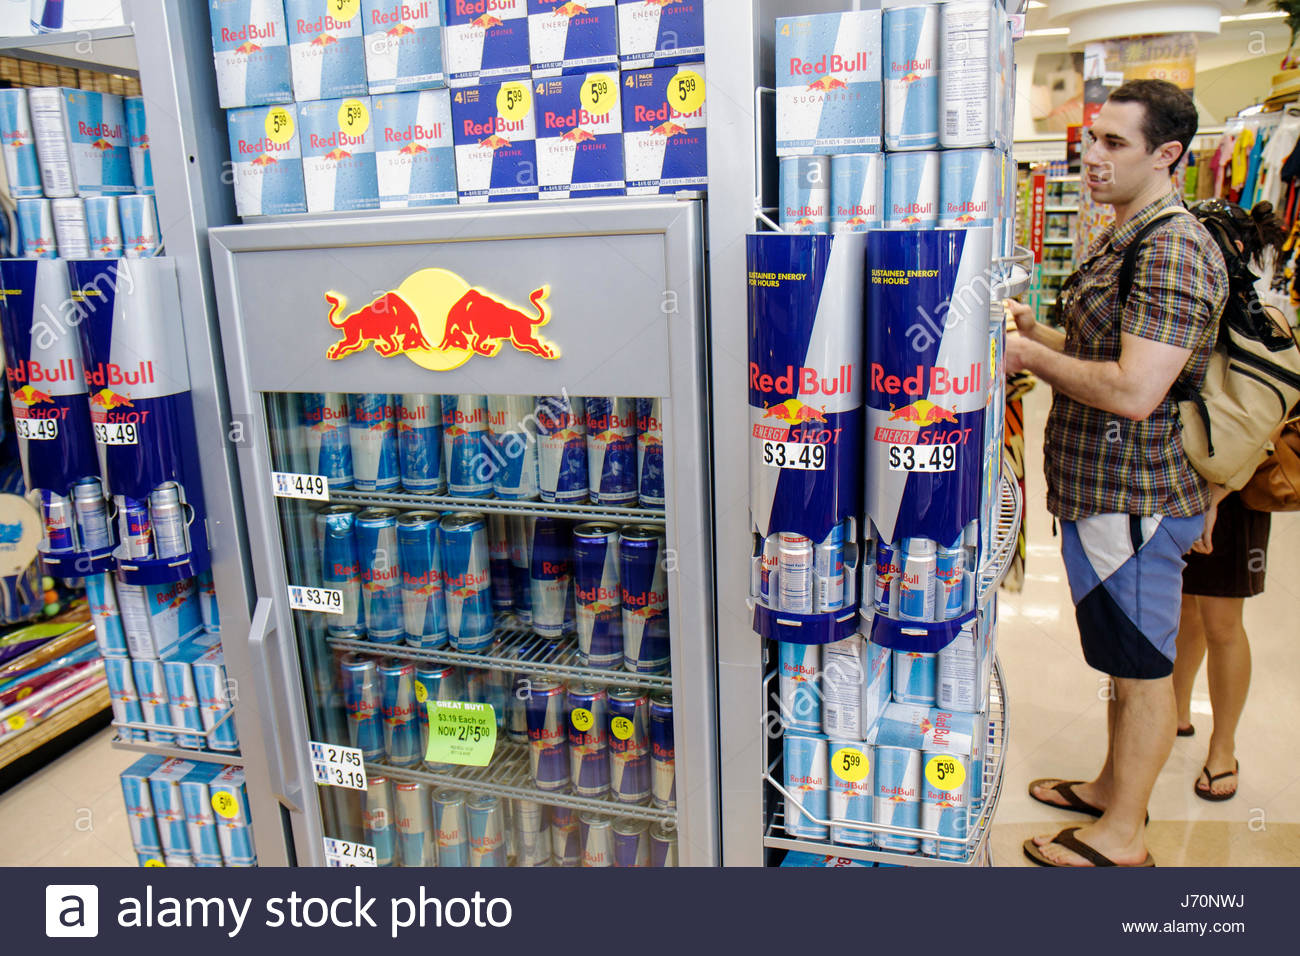 Miami Beach Florida Walgreens pharmacy drug store shopping packaging retail display shelf shelves products for sale - Stock Image